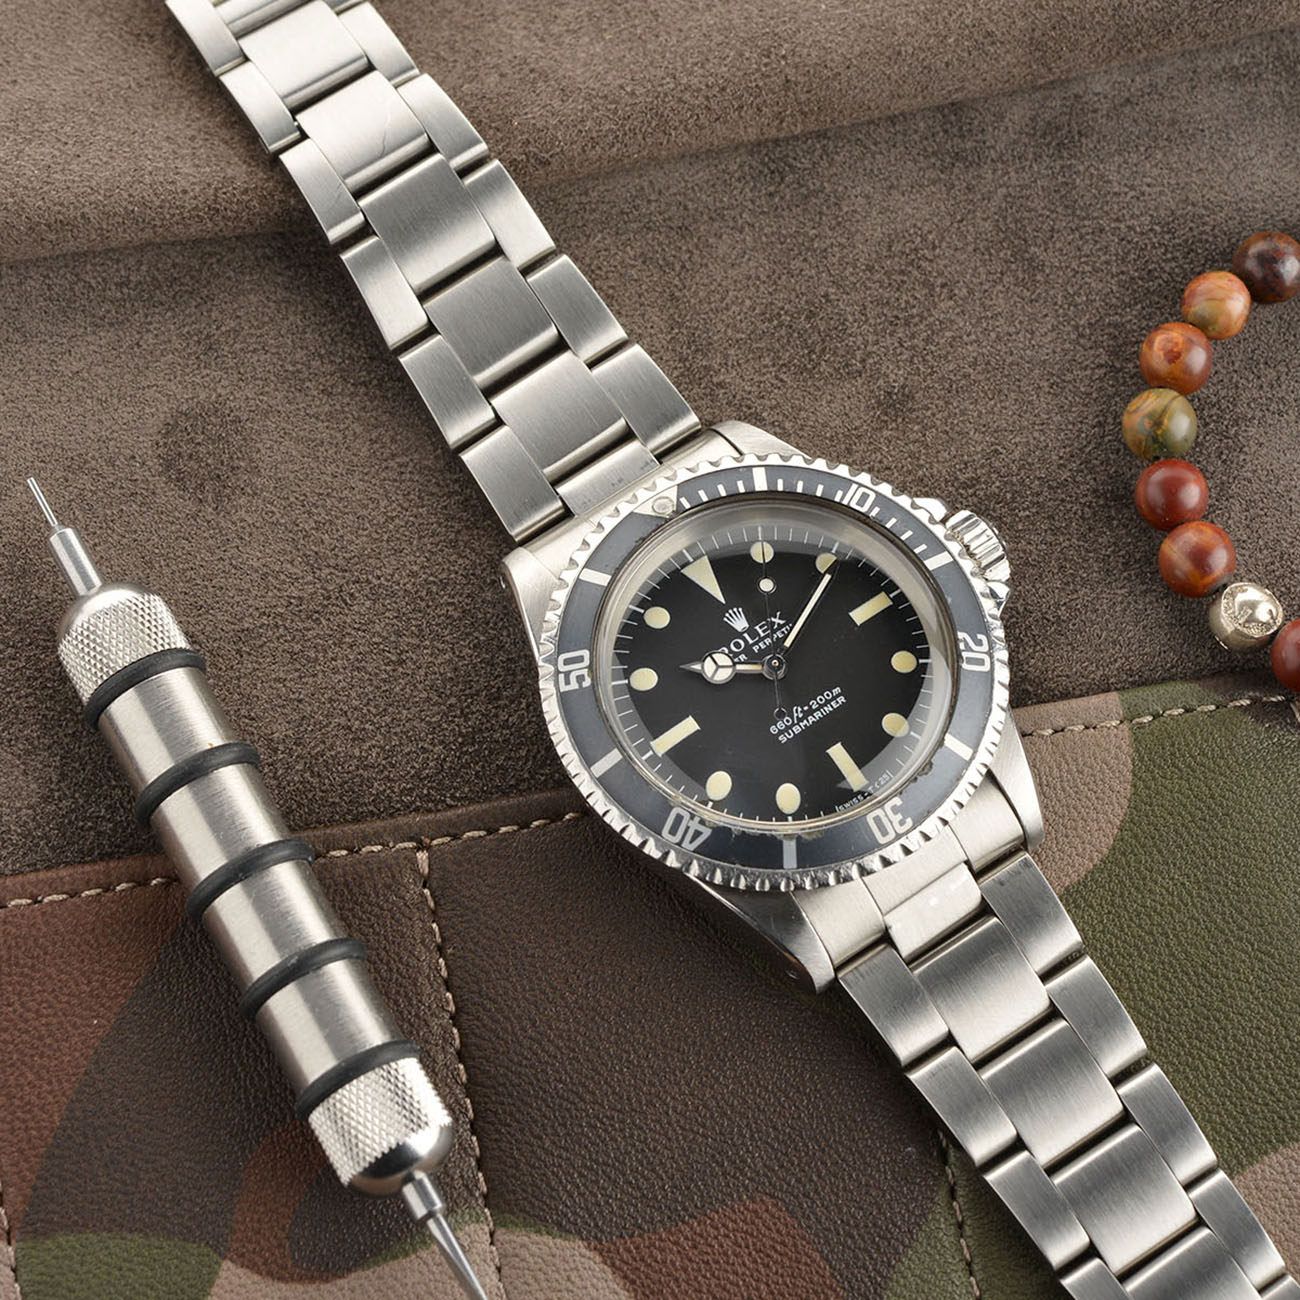 Vintage Rolex 5513 Submariner Love - Article at Bulang and Sons - Serif Dial